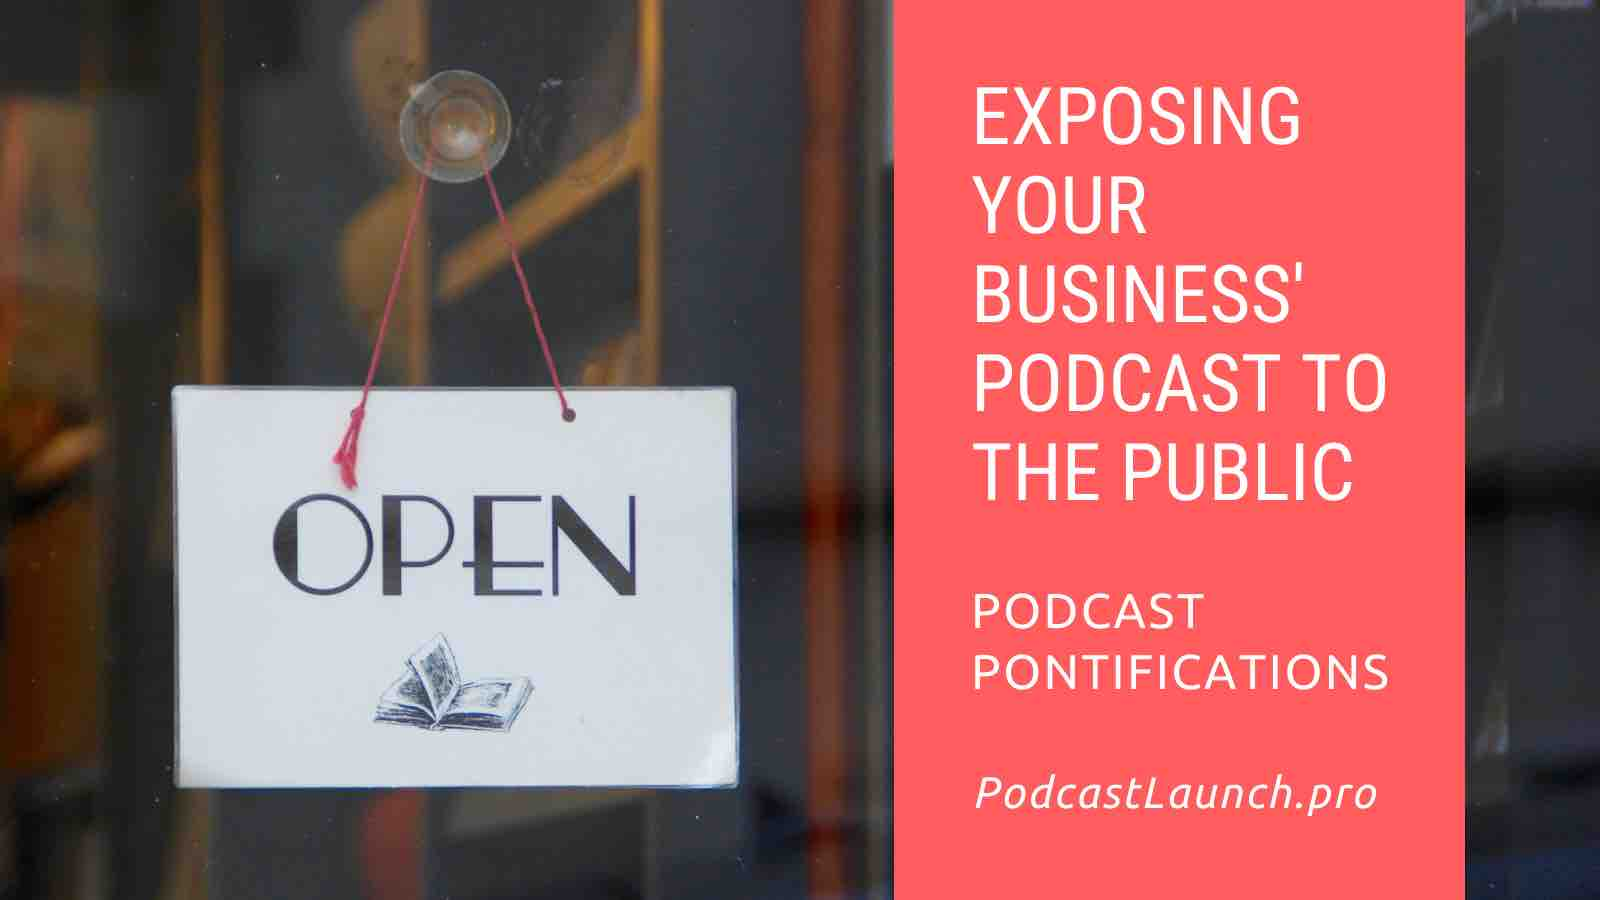 Exposing Your Business' Podcast To The Public